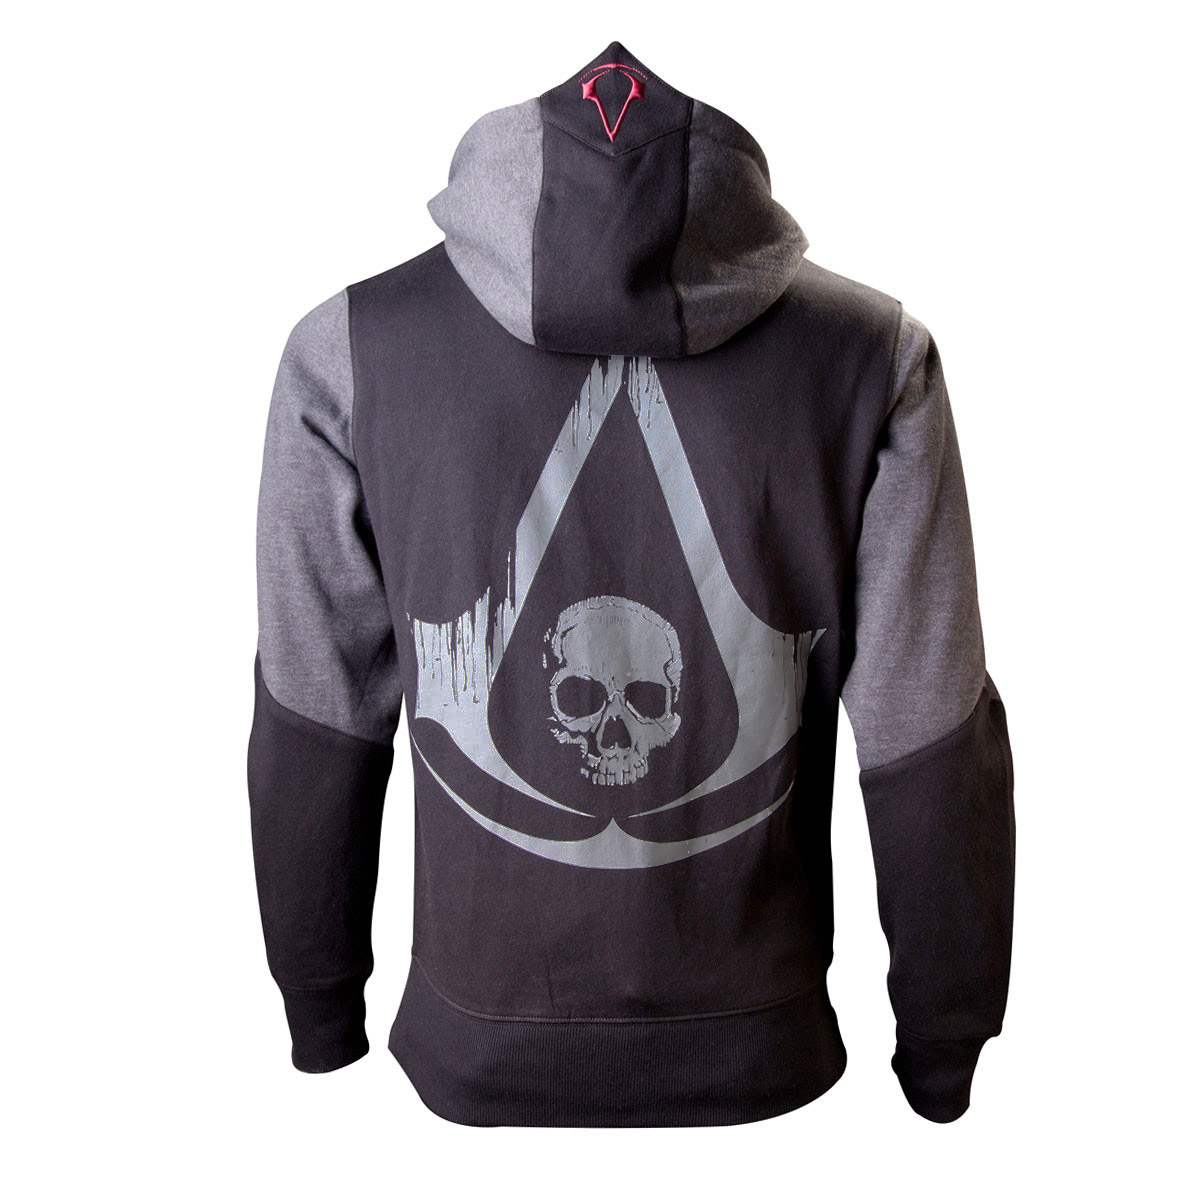 Assassins Creed IV Black Flag Hooded Sweater Logo Size S